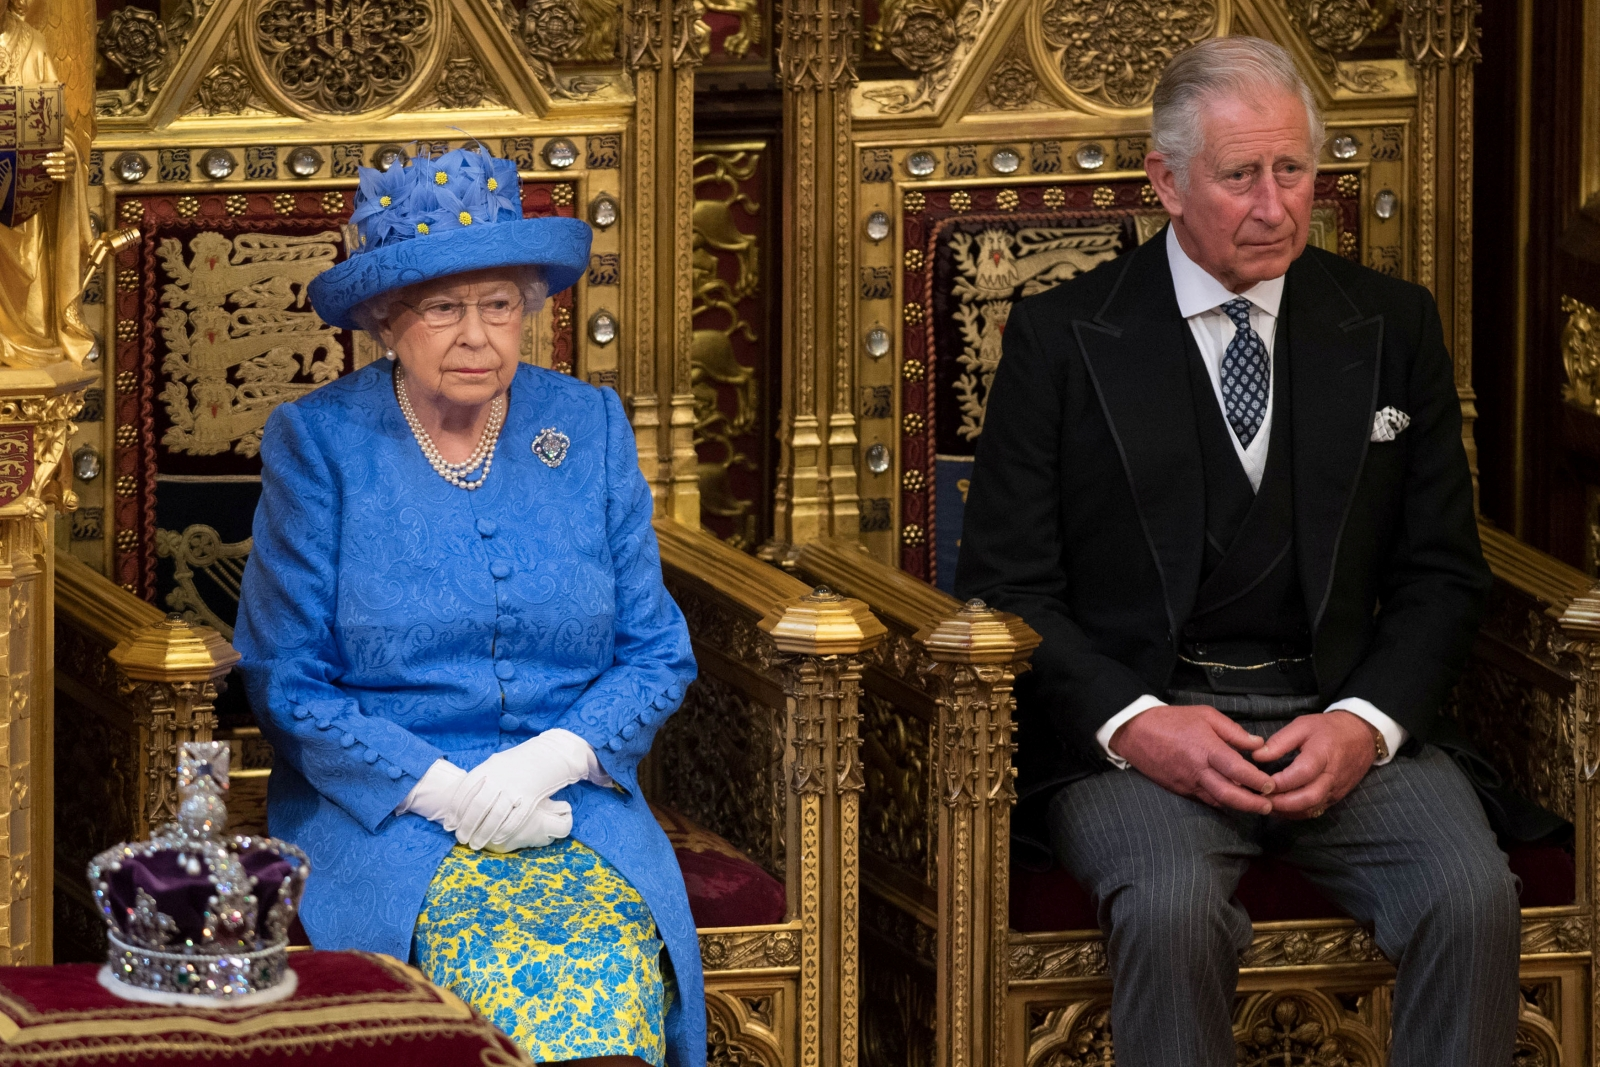 Prince Charles and the Queen